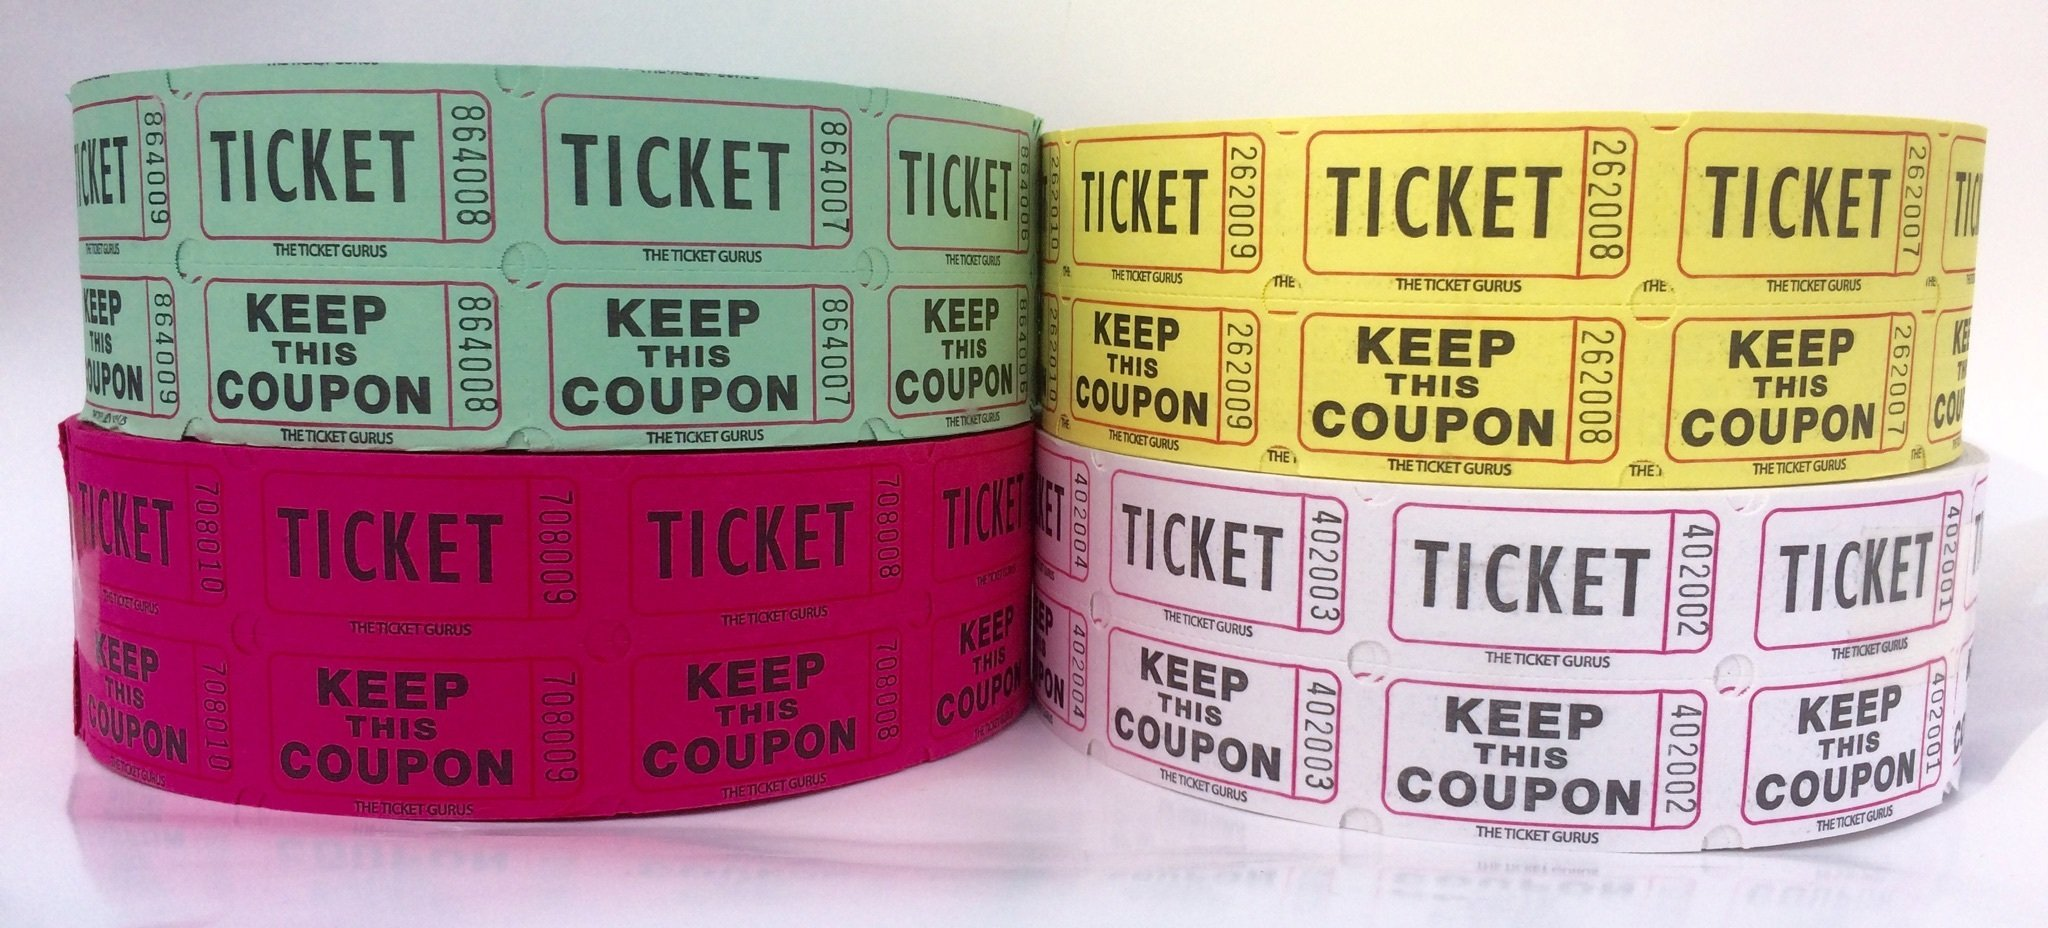 The Ticket Gurus-Raffle Tickets - (4 Rolls of 2000 Double Tickets) 8,000 Total 50/50 Raffle Tickets (Purple/Green/White/Yellow) by The Ticket Gurus